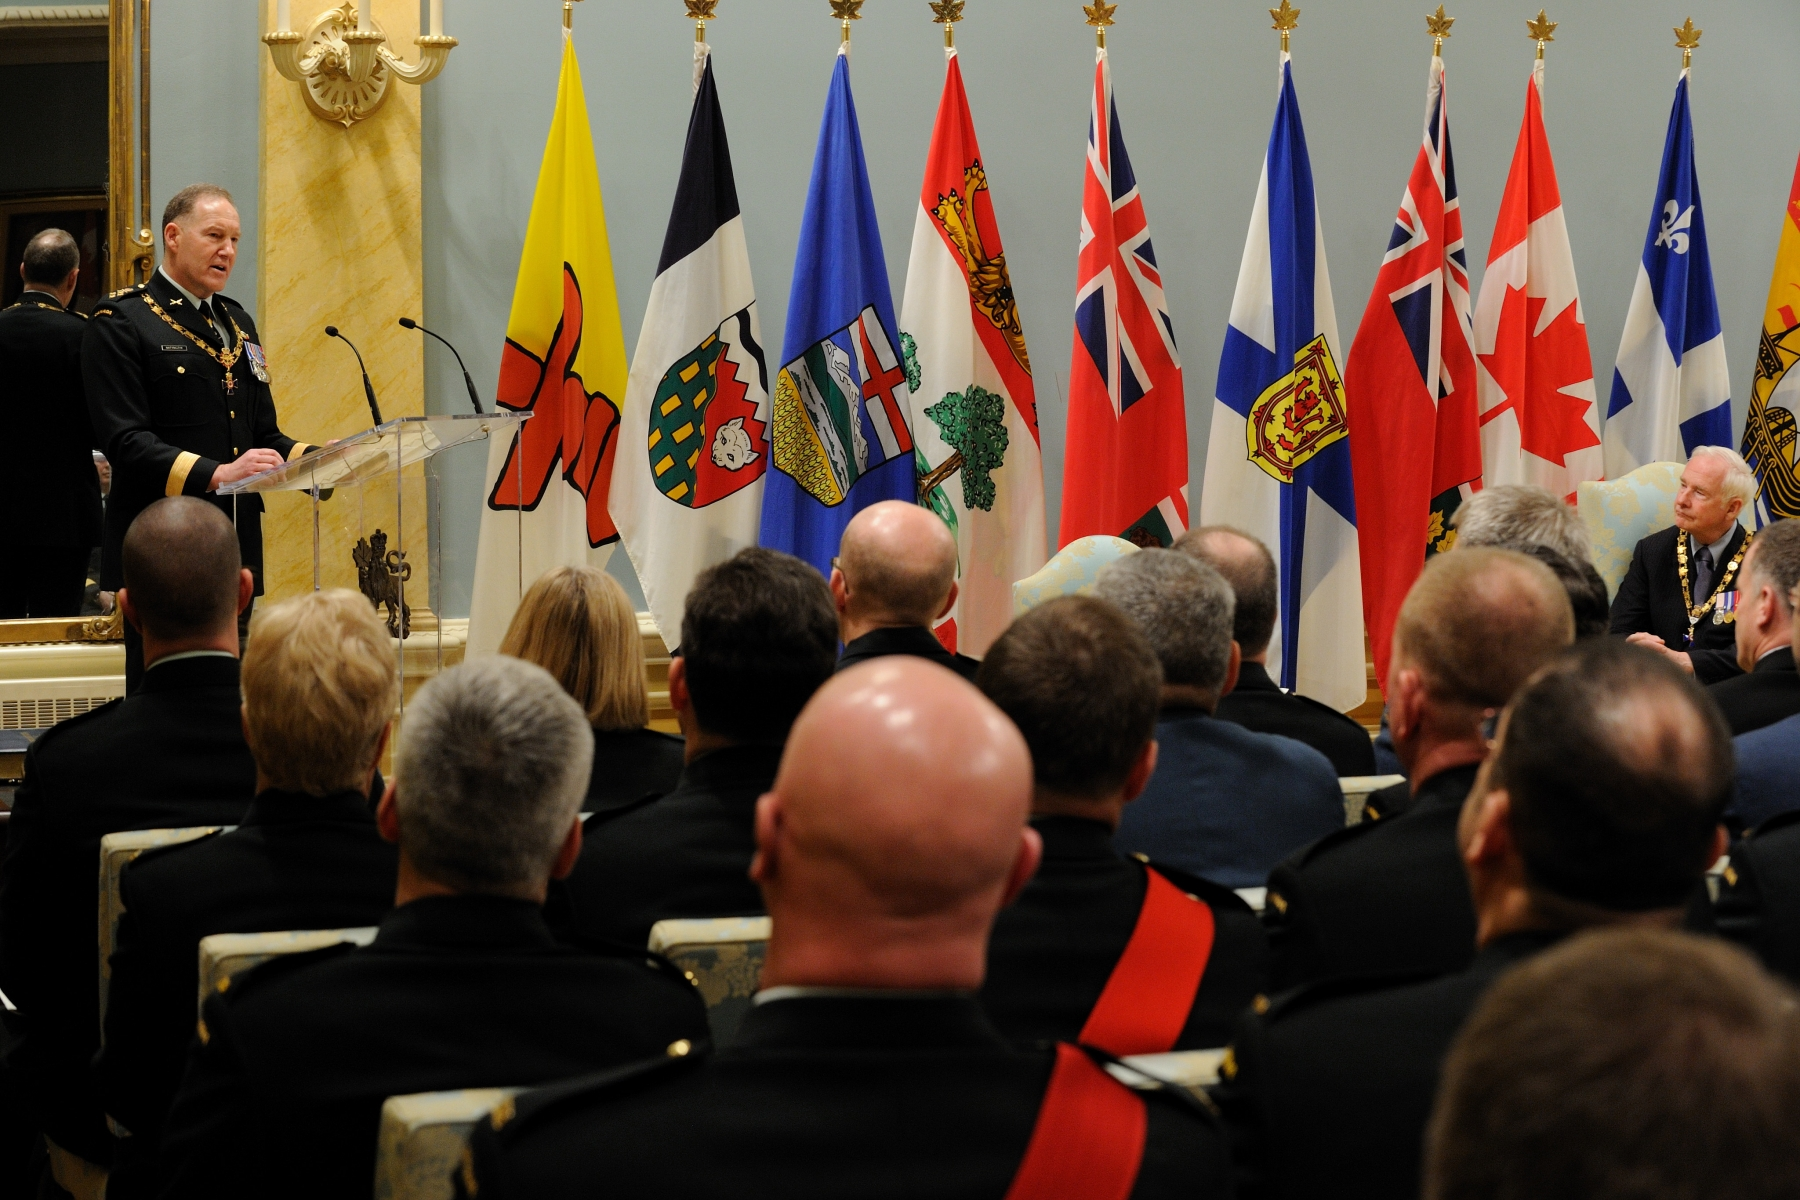 General Walt Natynczyk, Chief of the Defence Staff, also spoke during this ceremony.